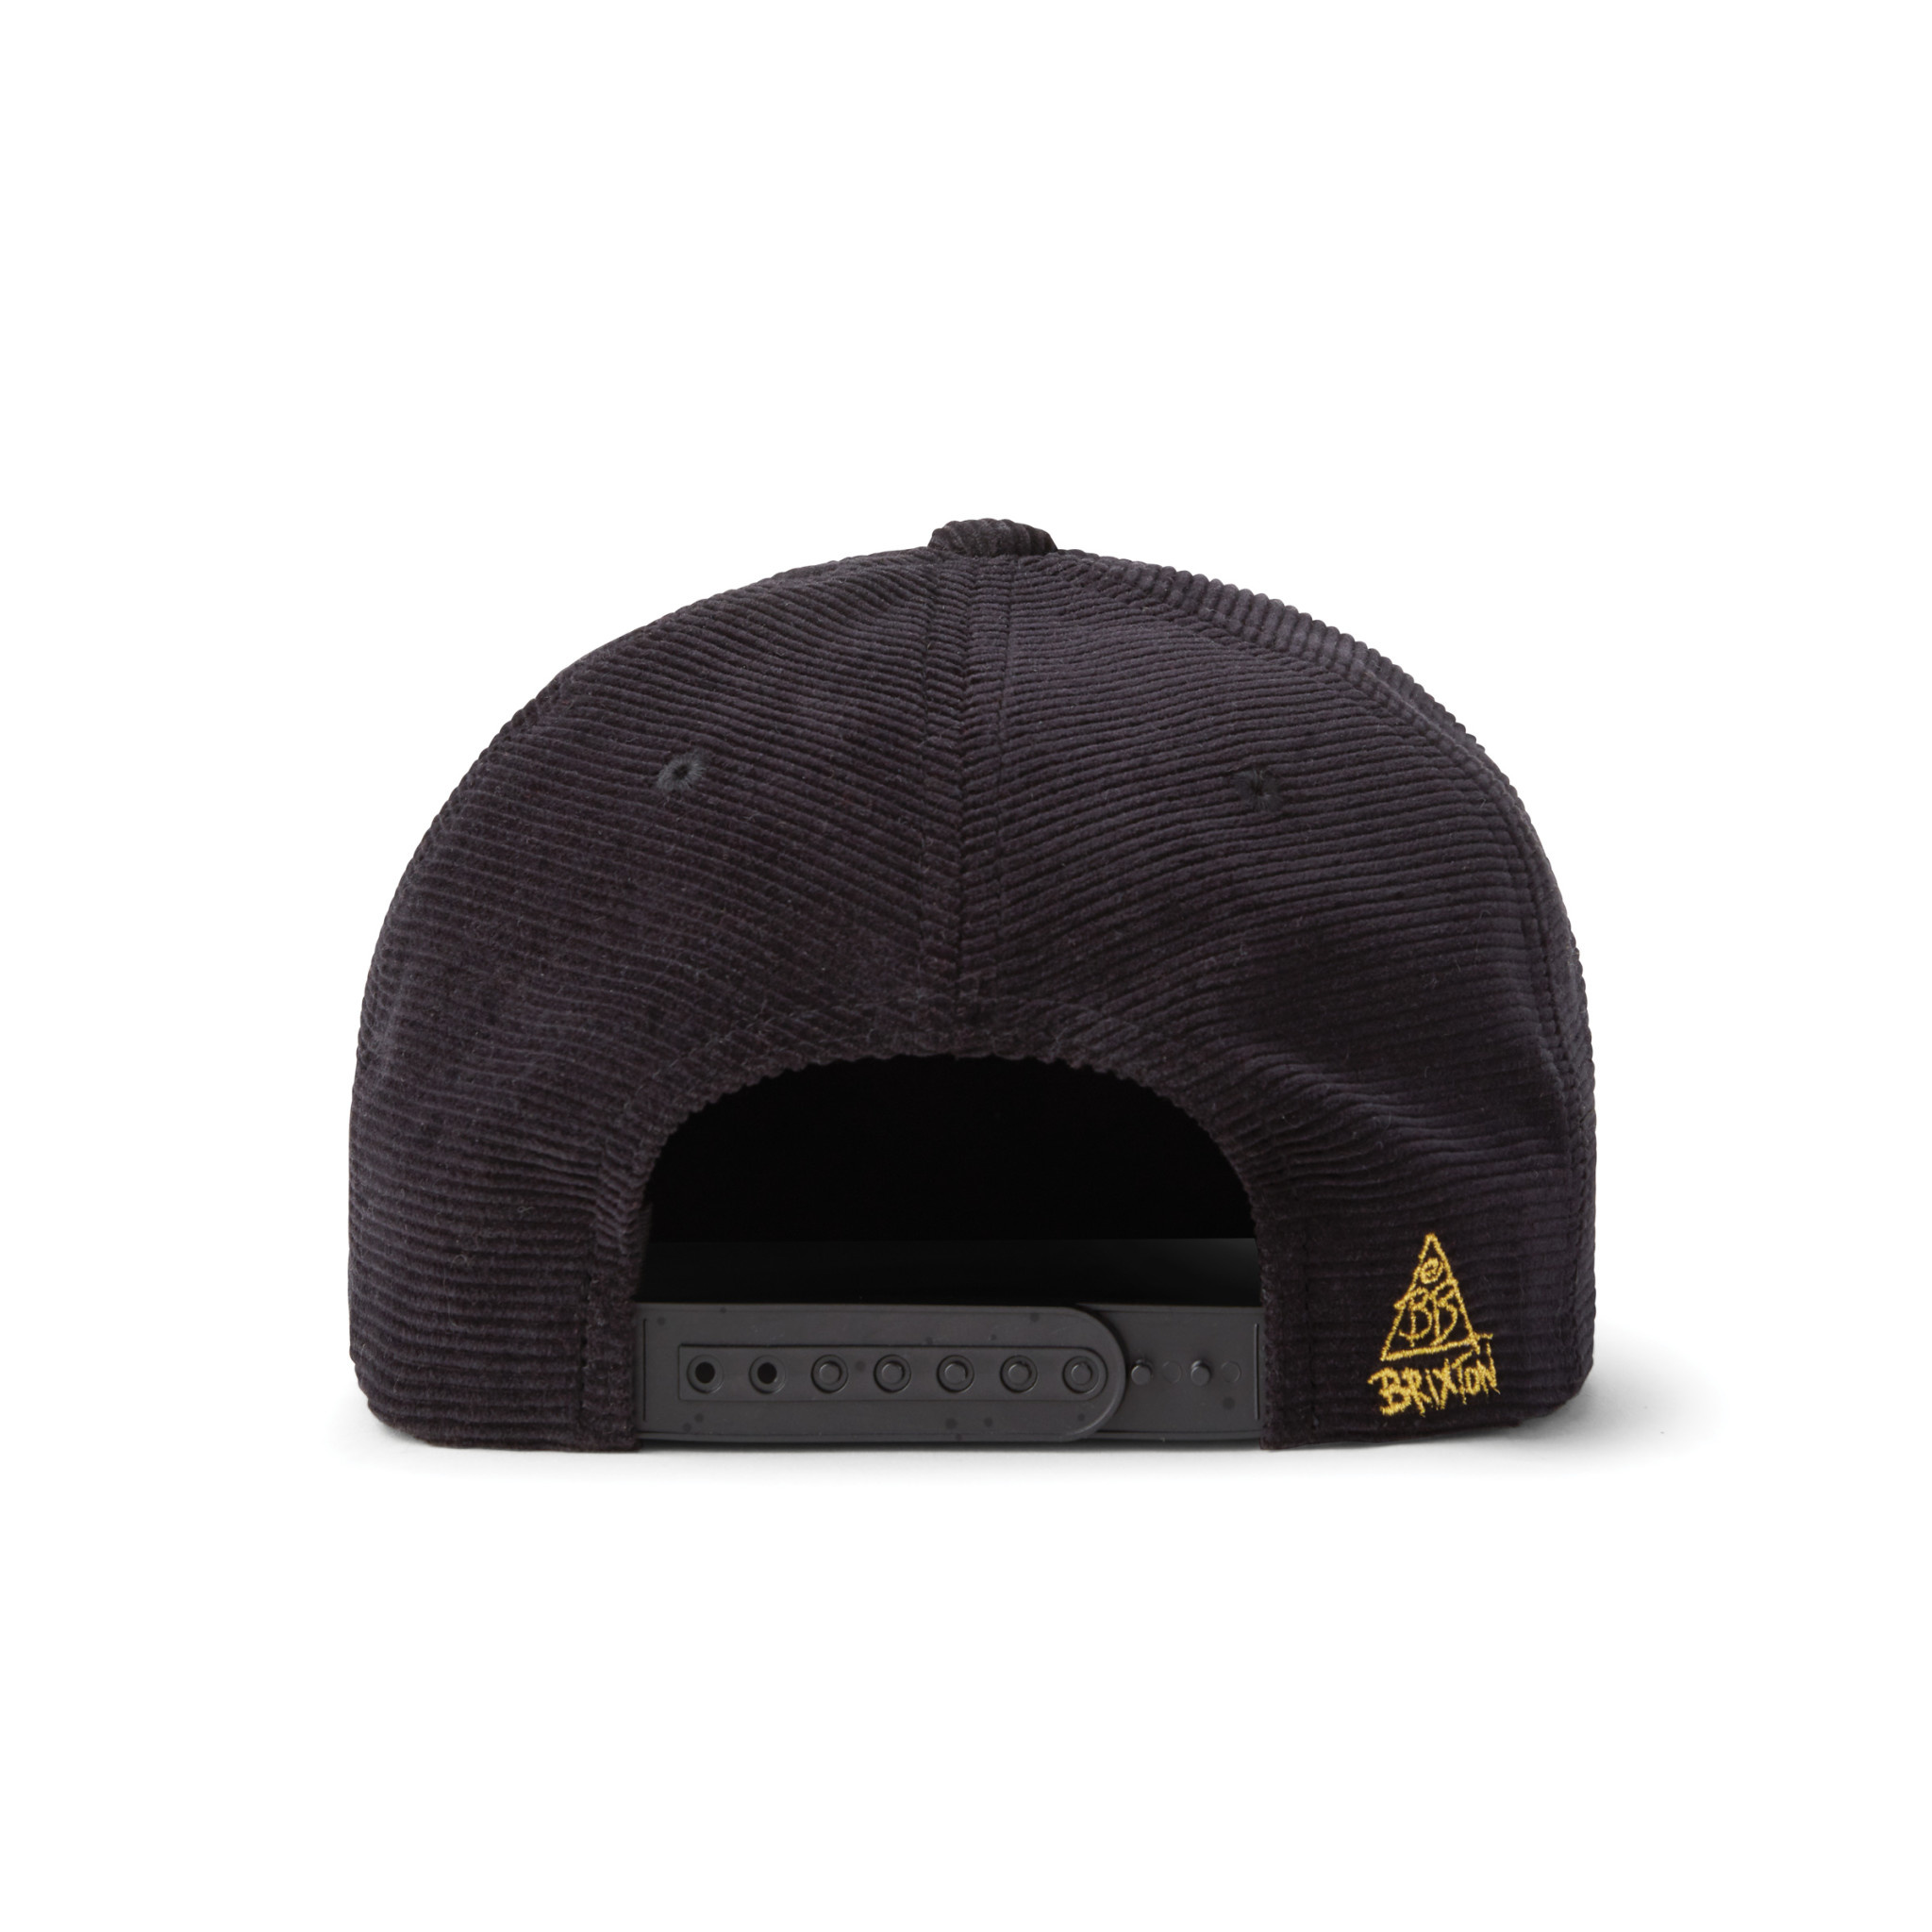 Brixton Brixton BB Mode MP Snapback - Black